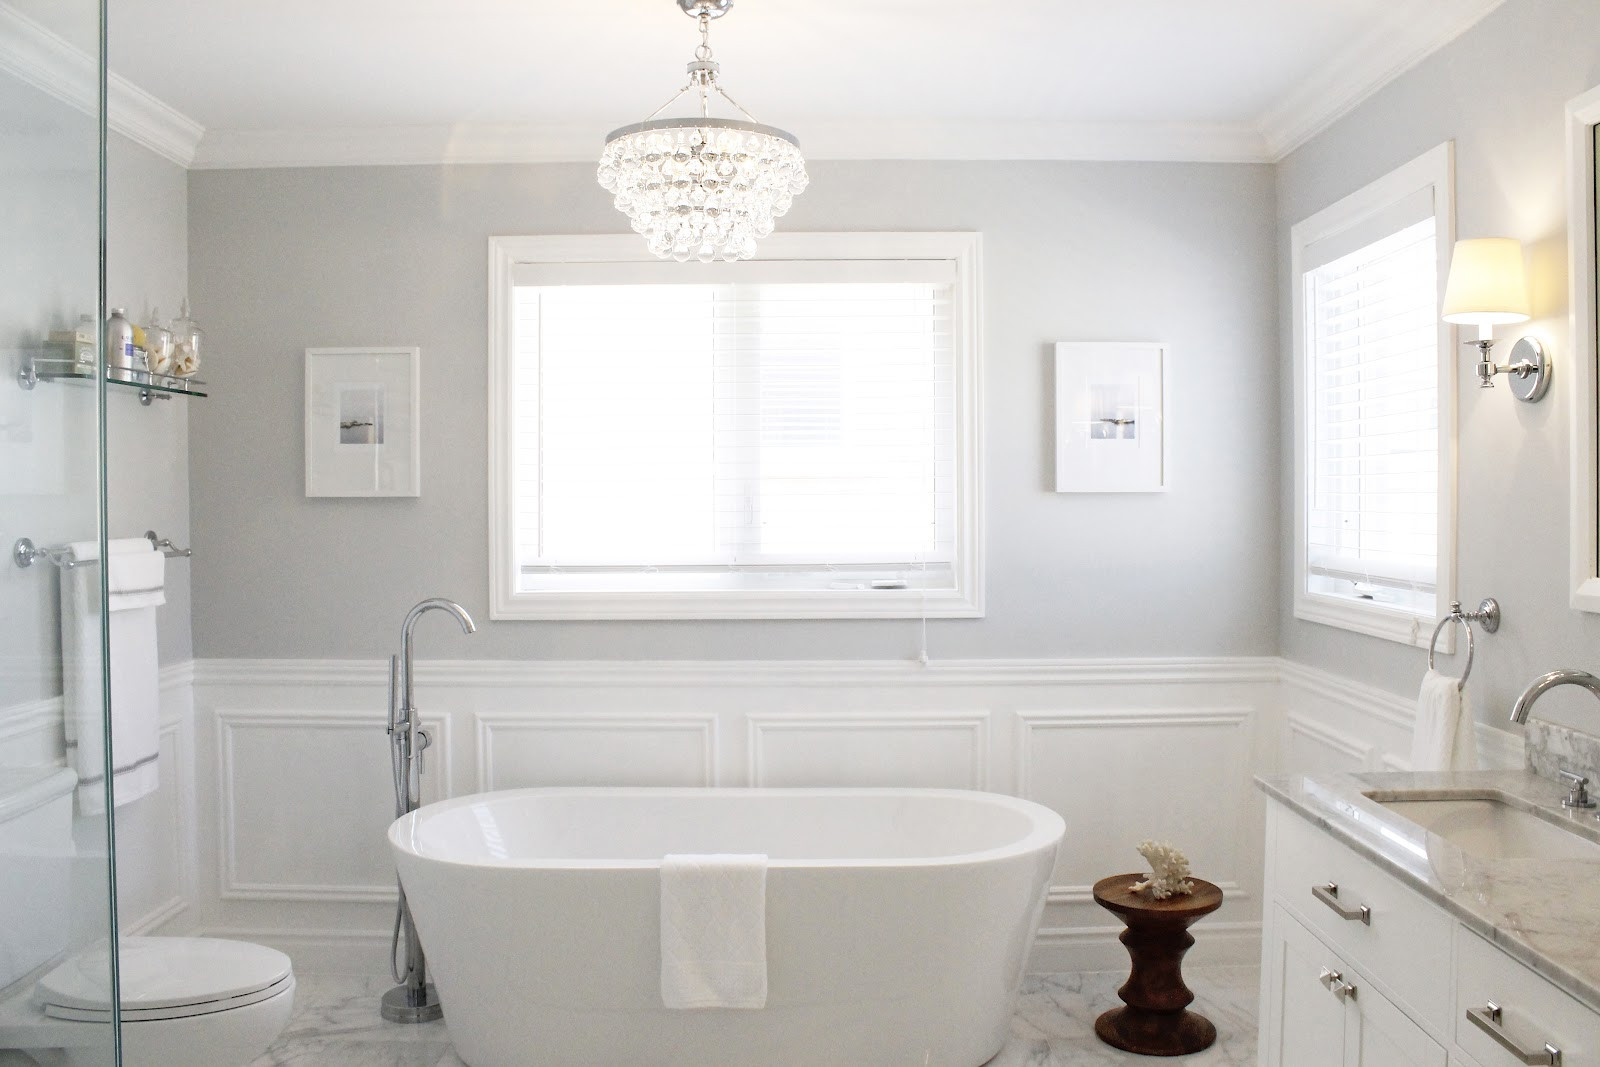 Best ideas about Bathroom Paint Color Ideas . Save or Pin 5 Stunning Ideas Now.